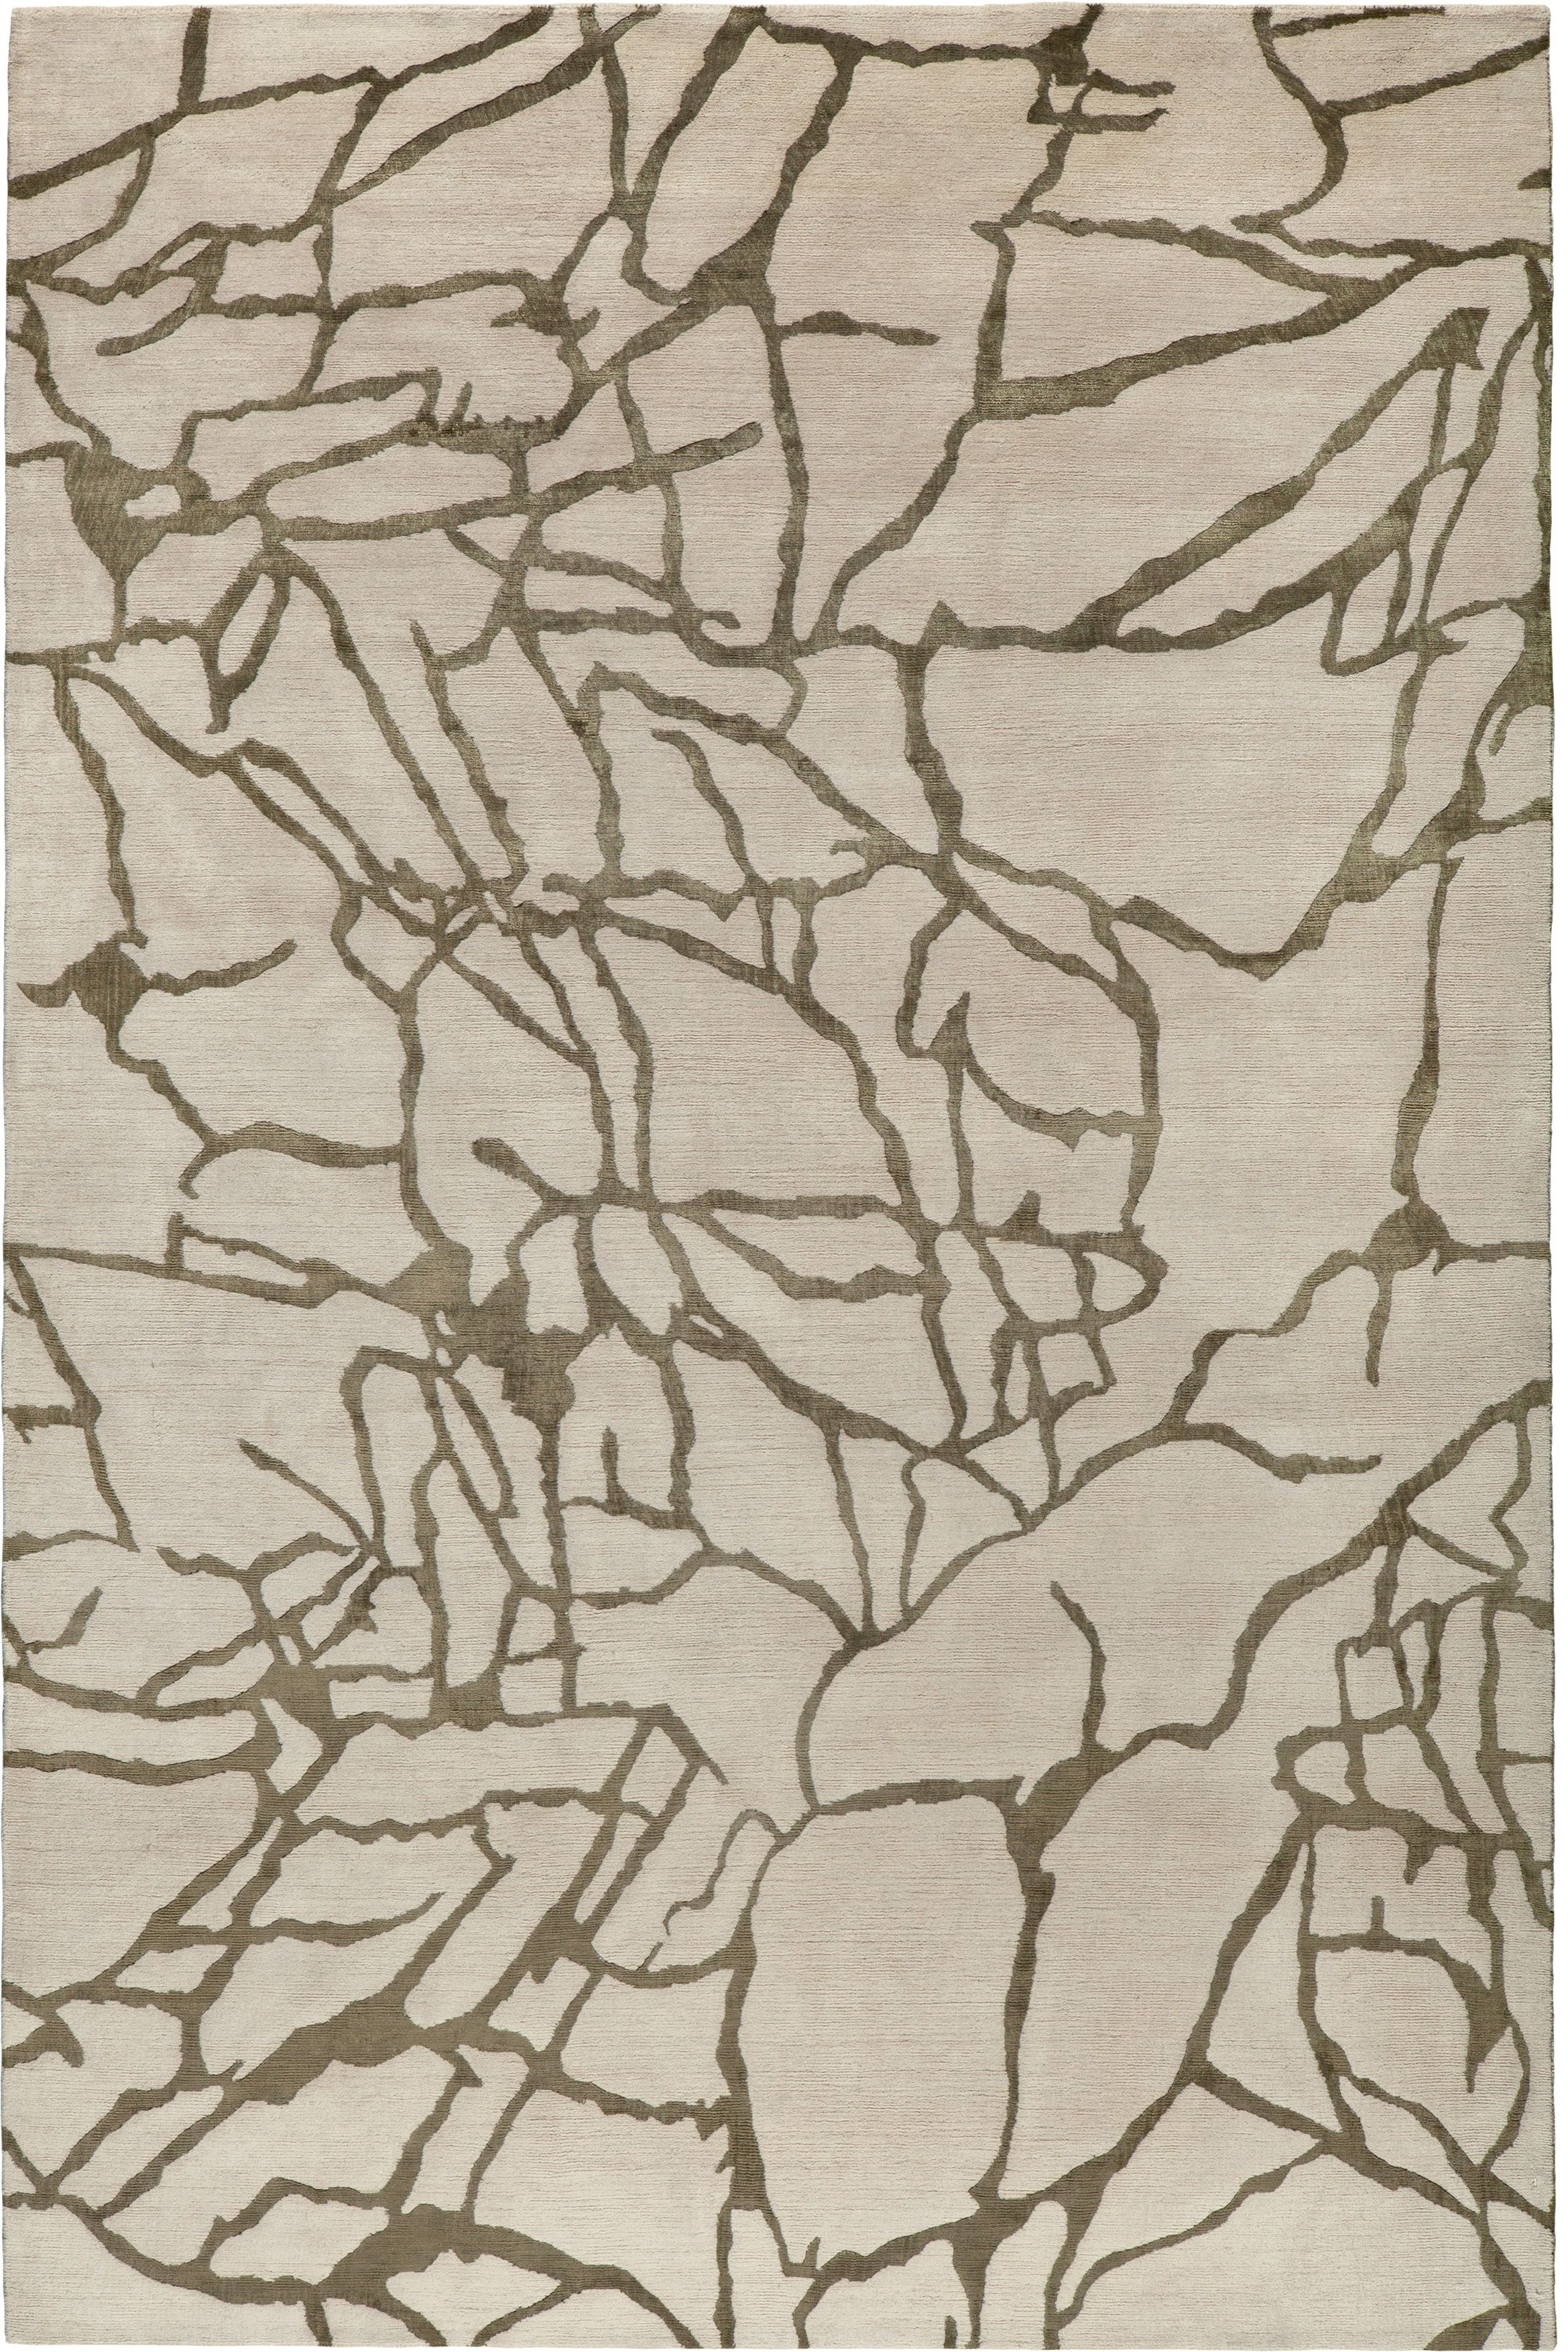 Tracery Rug By Kelly Wearstler In 2020 With Images Kelly Wearstler Contemporary Rugs Rugs